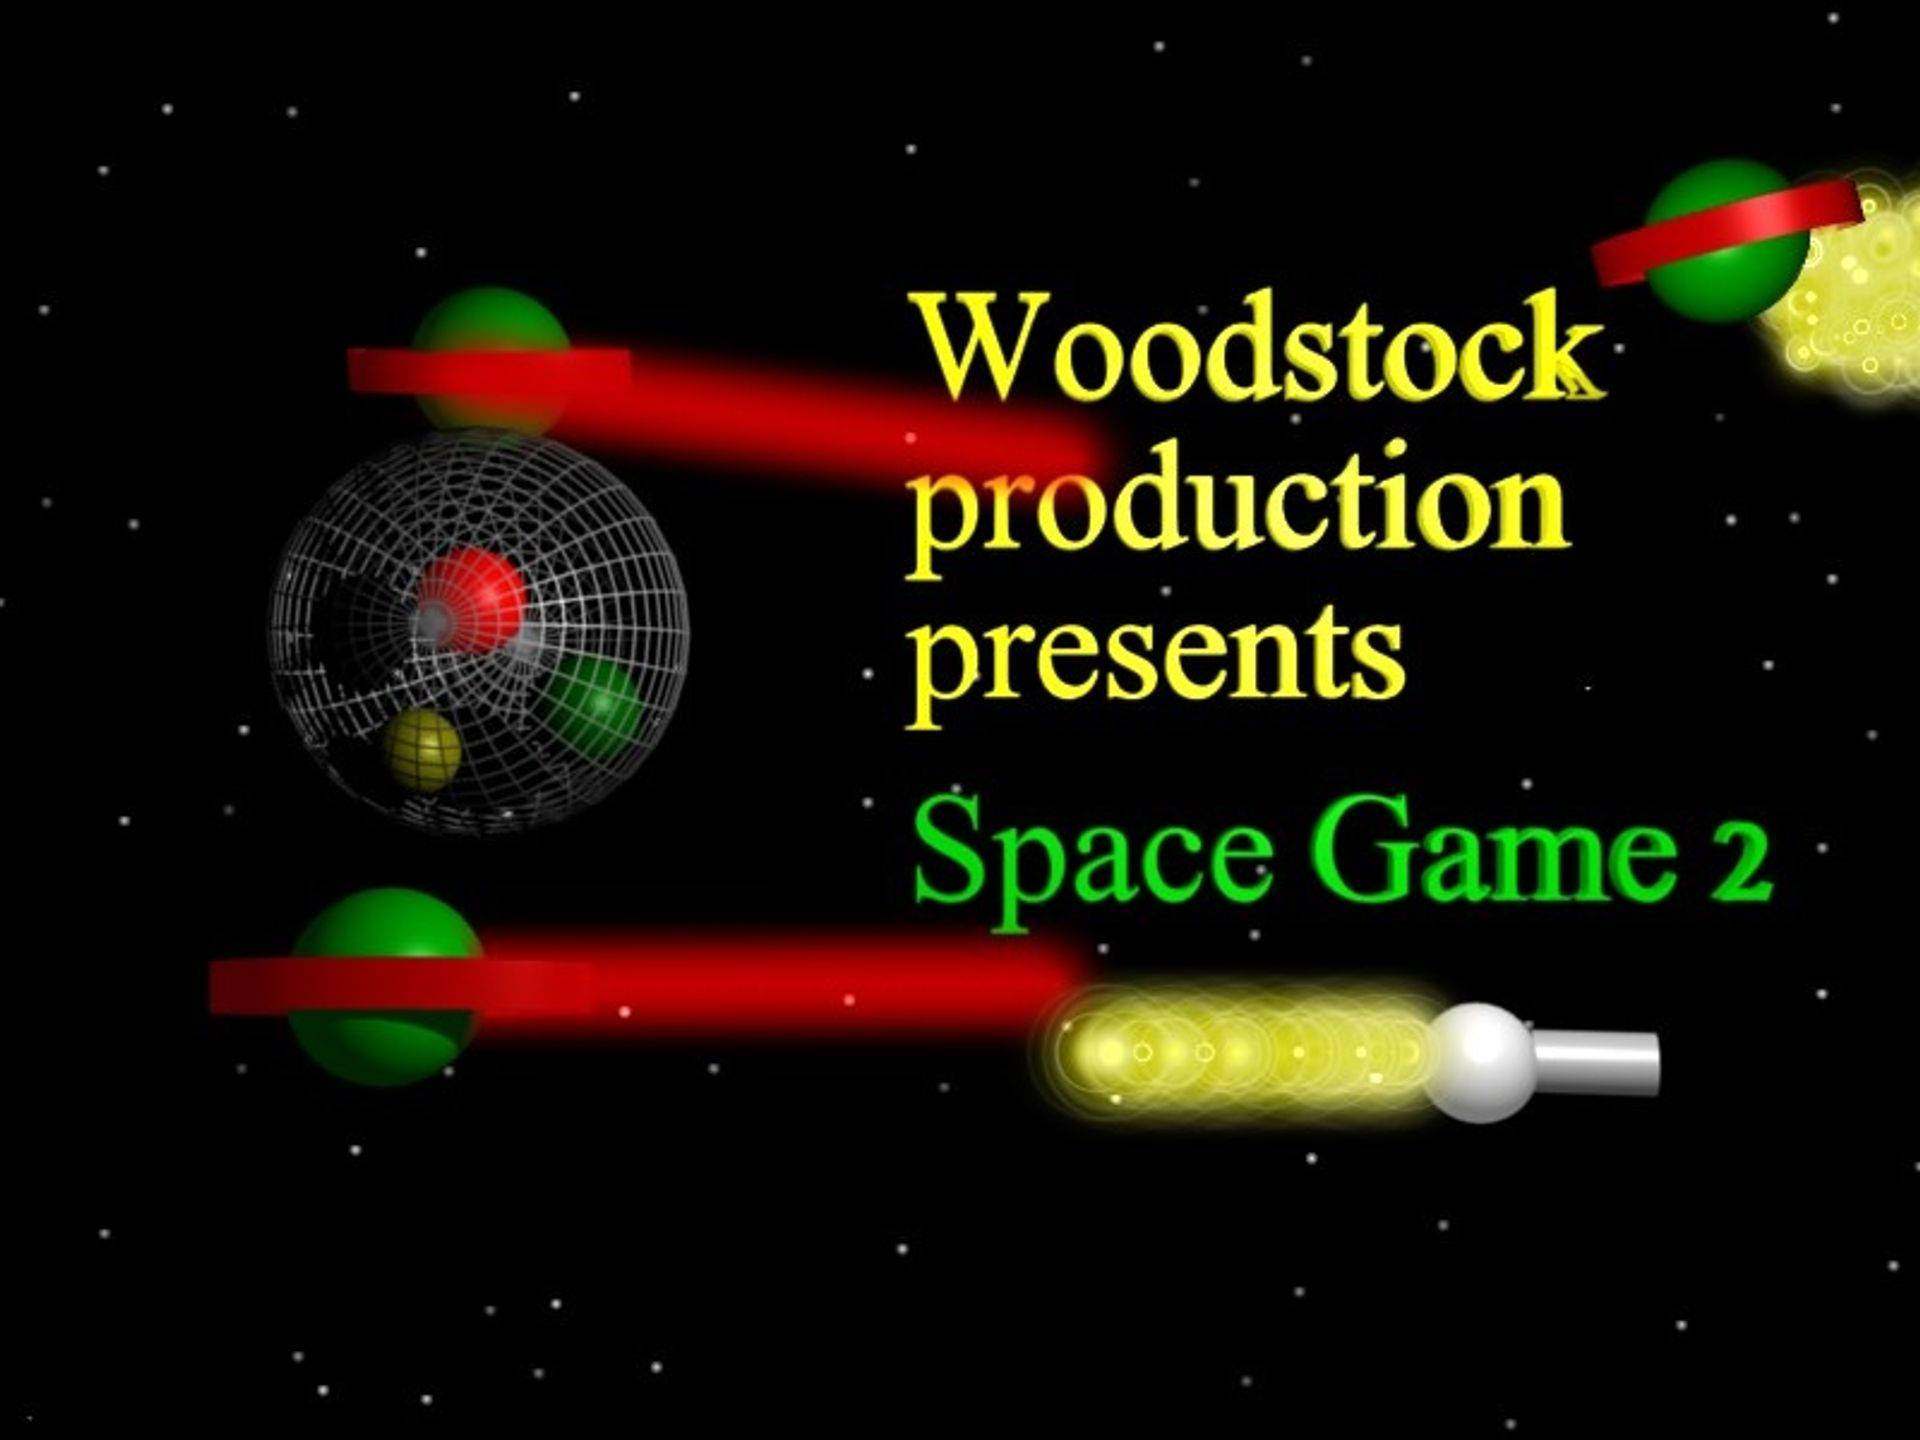 Play our space game 2 demo for windows 64 bit computers.